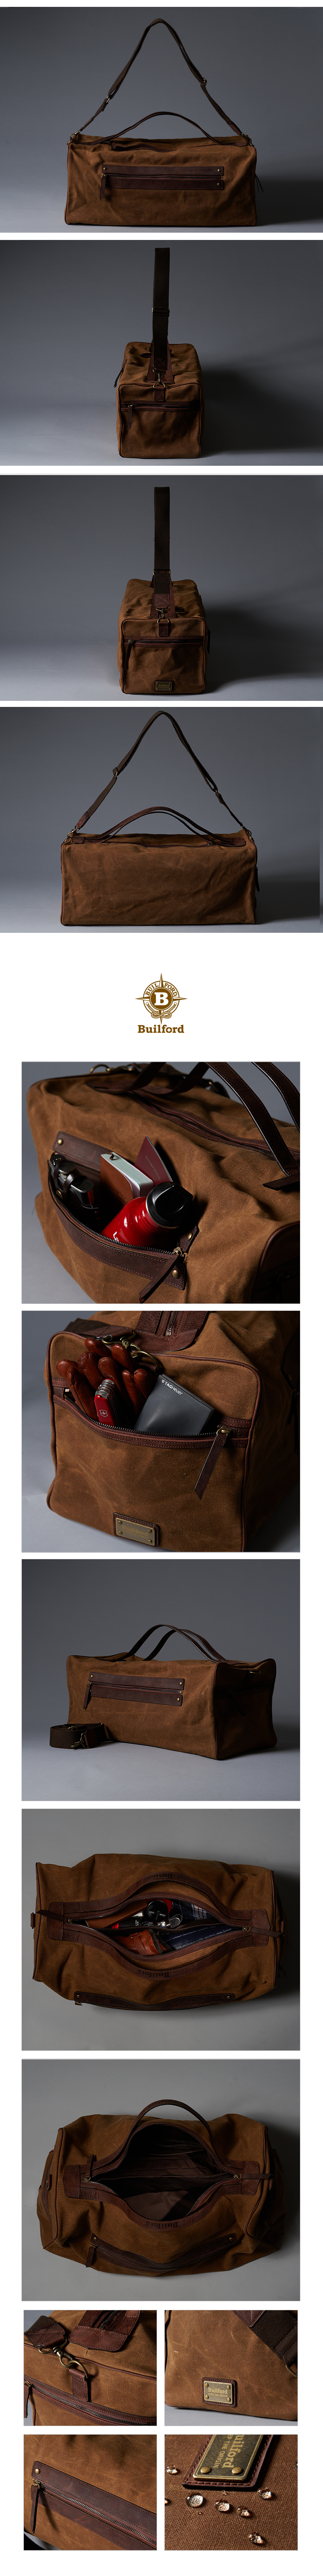 Travel Duffle bag_2